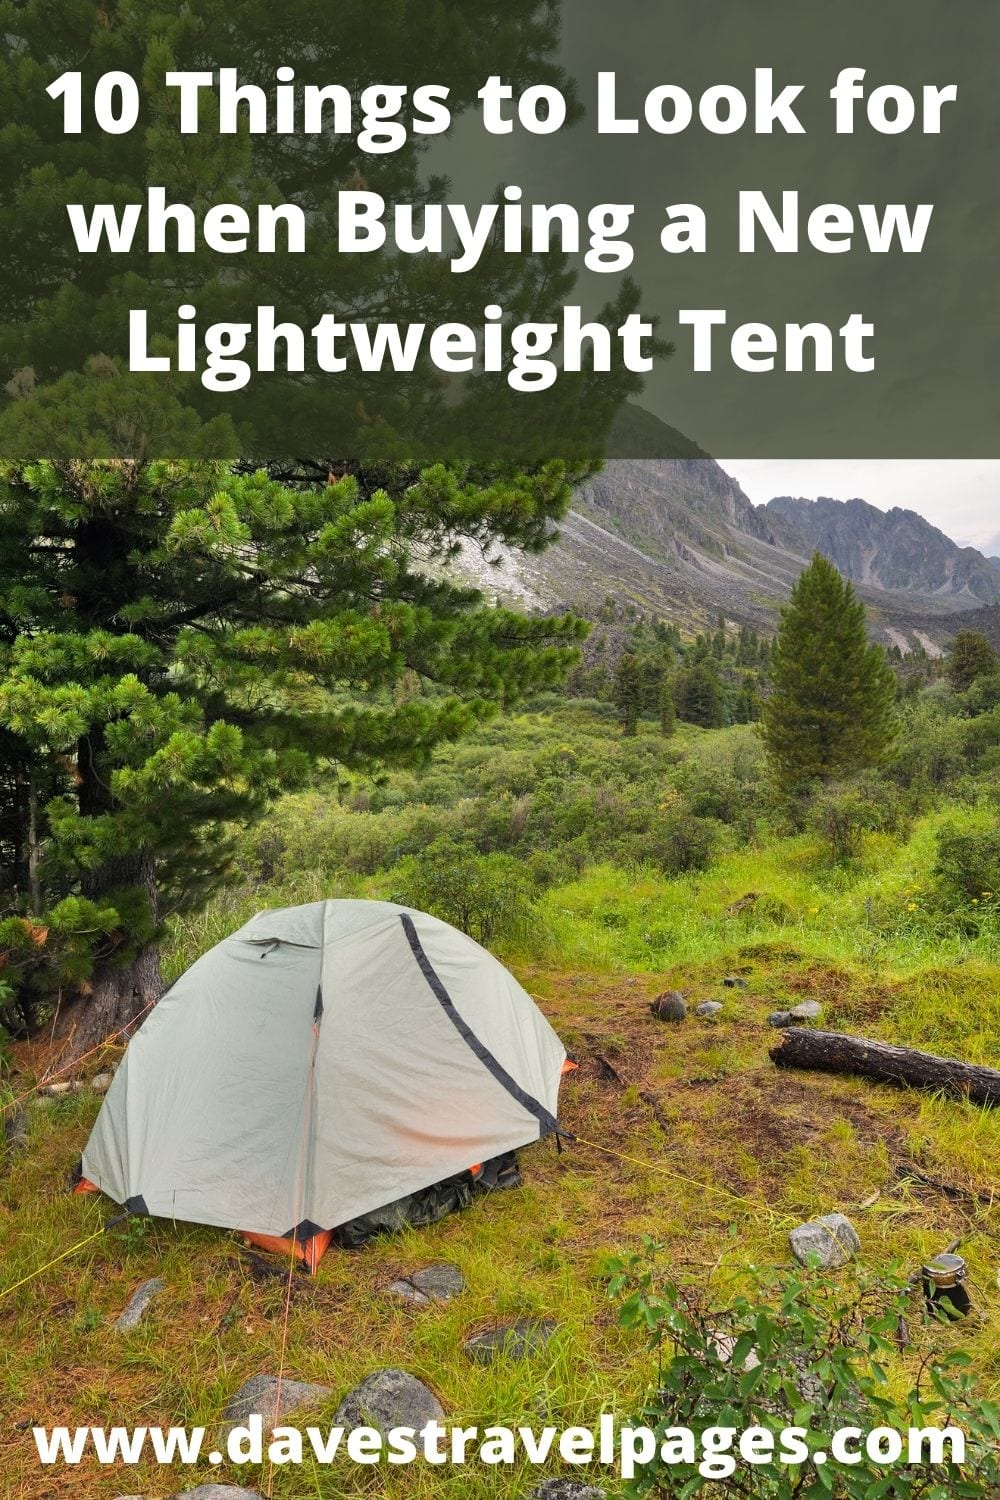 10 Things to Look for when Buying a New Lightweight Tent